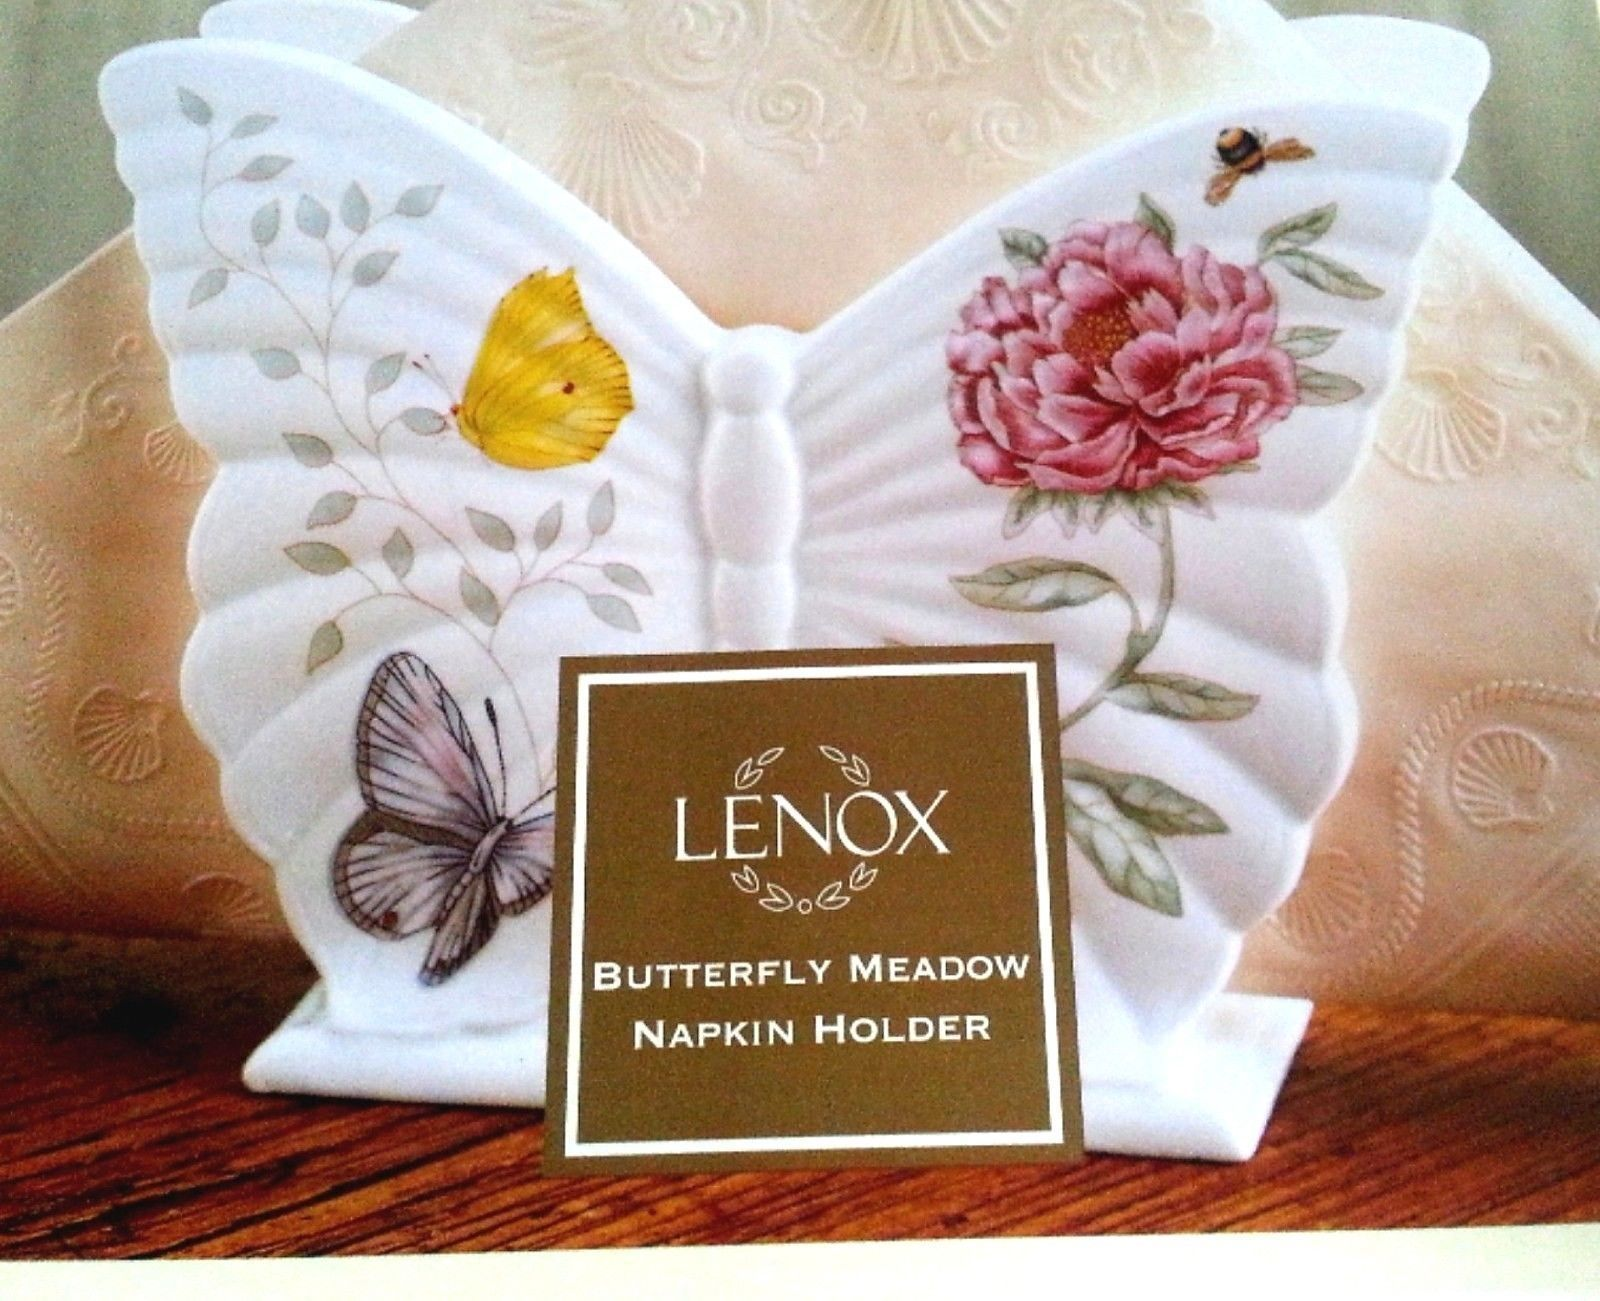 Lenox Butterfly Meadow Napkin Holder Figurine Sculpted Porcelain Gift NEW IN BOX